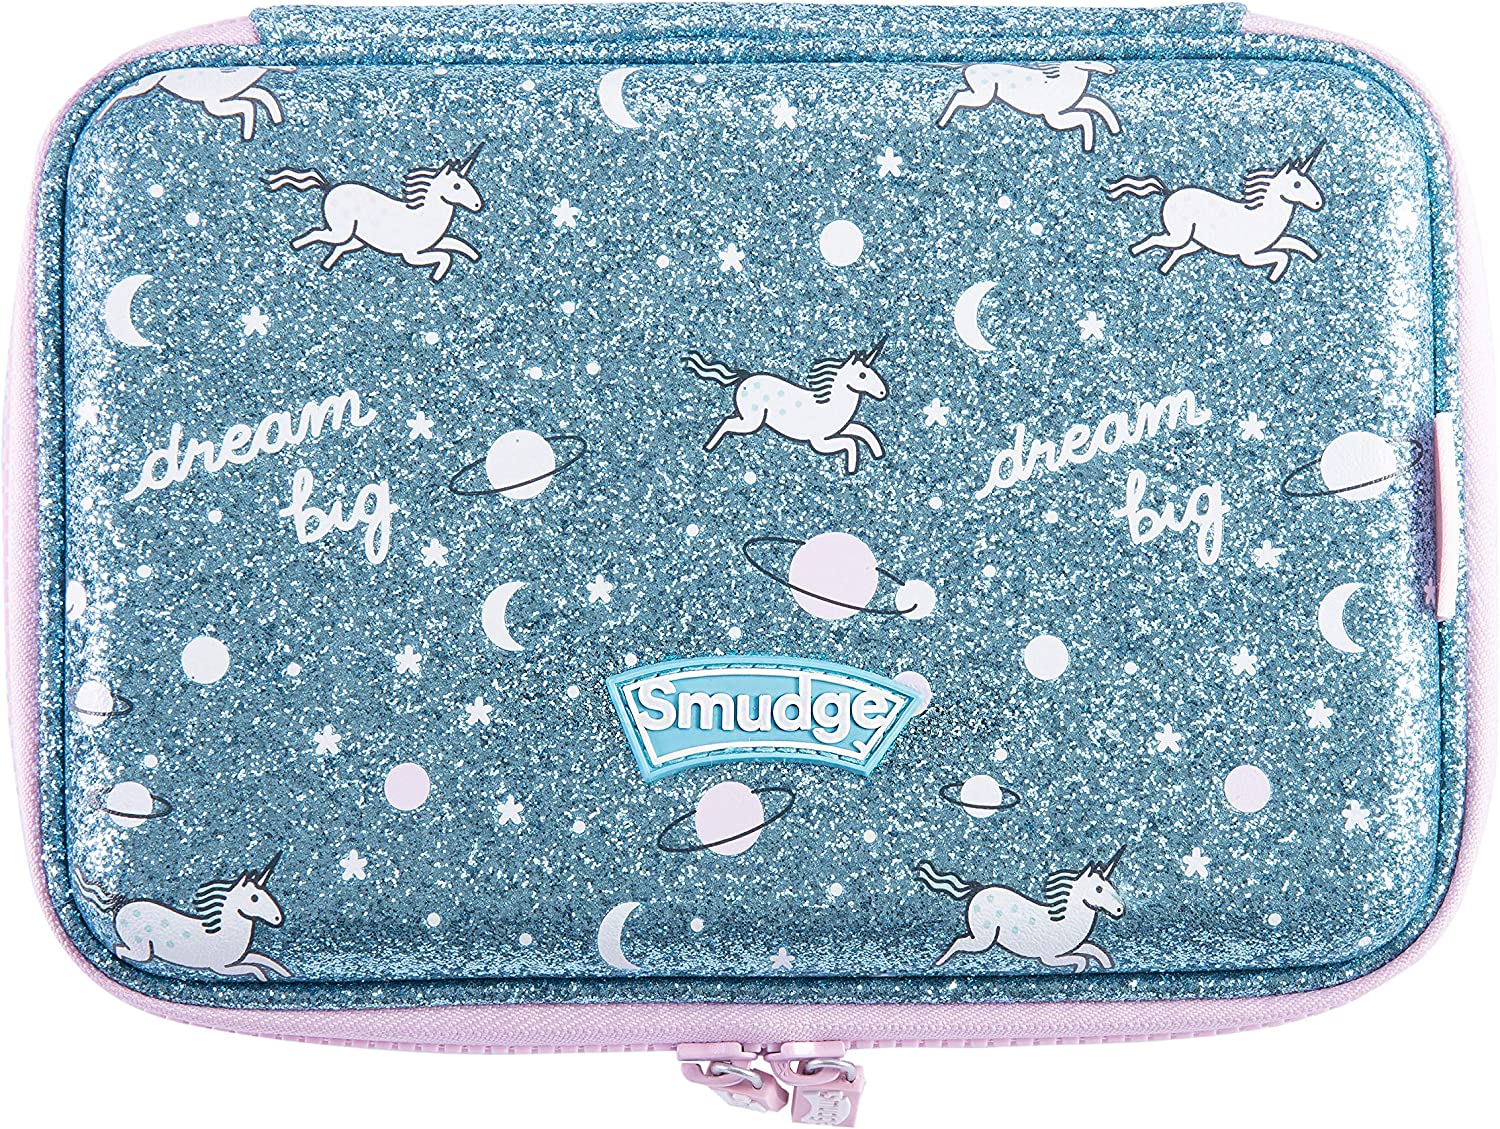 Smudge Stationery Unicorn Hardtop Pencil Case - Estuches con purpurina para niñas - Papelería escolar para niños